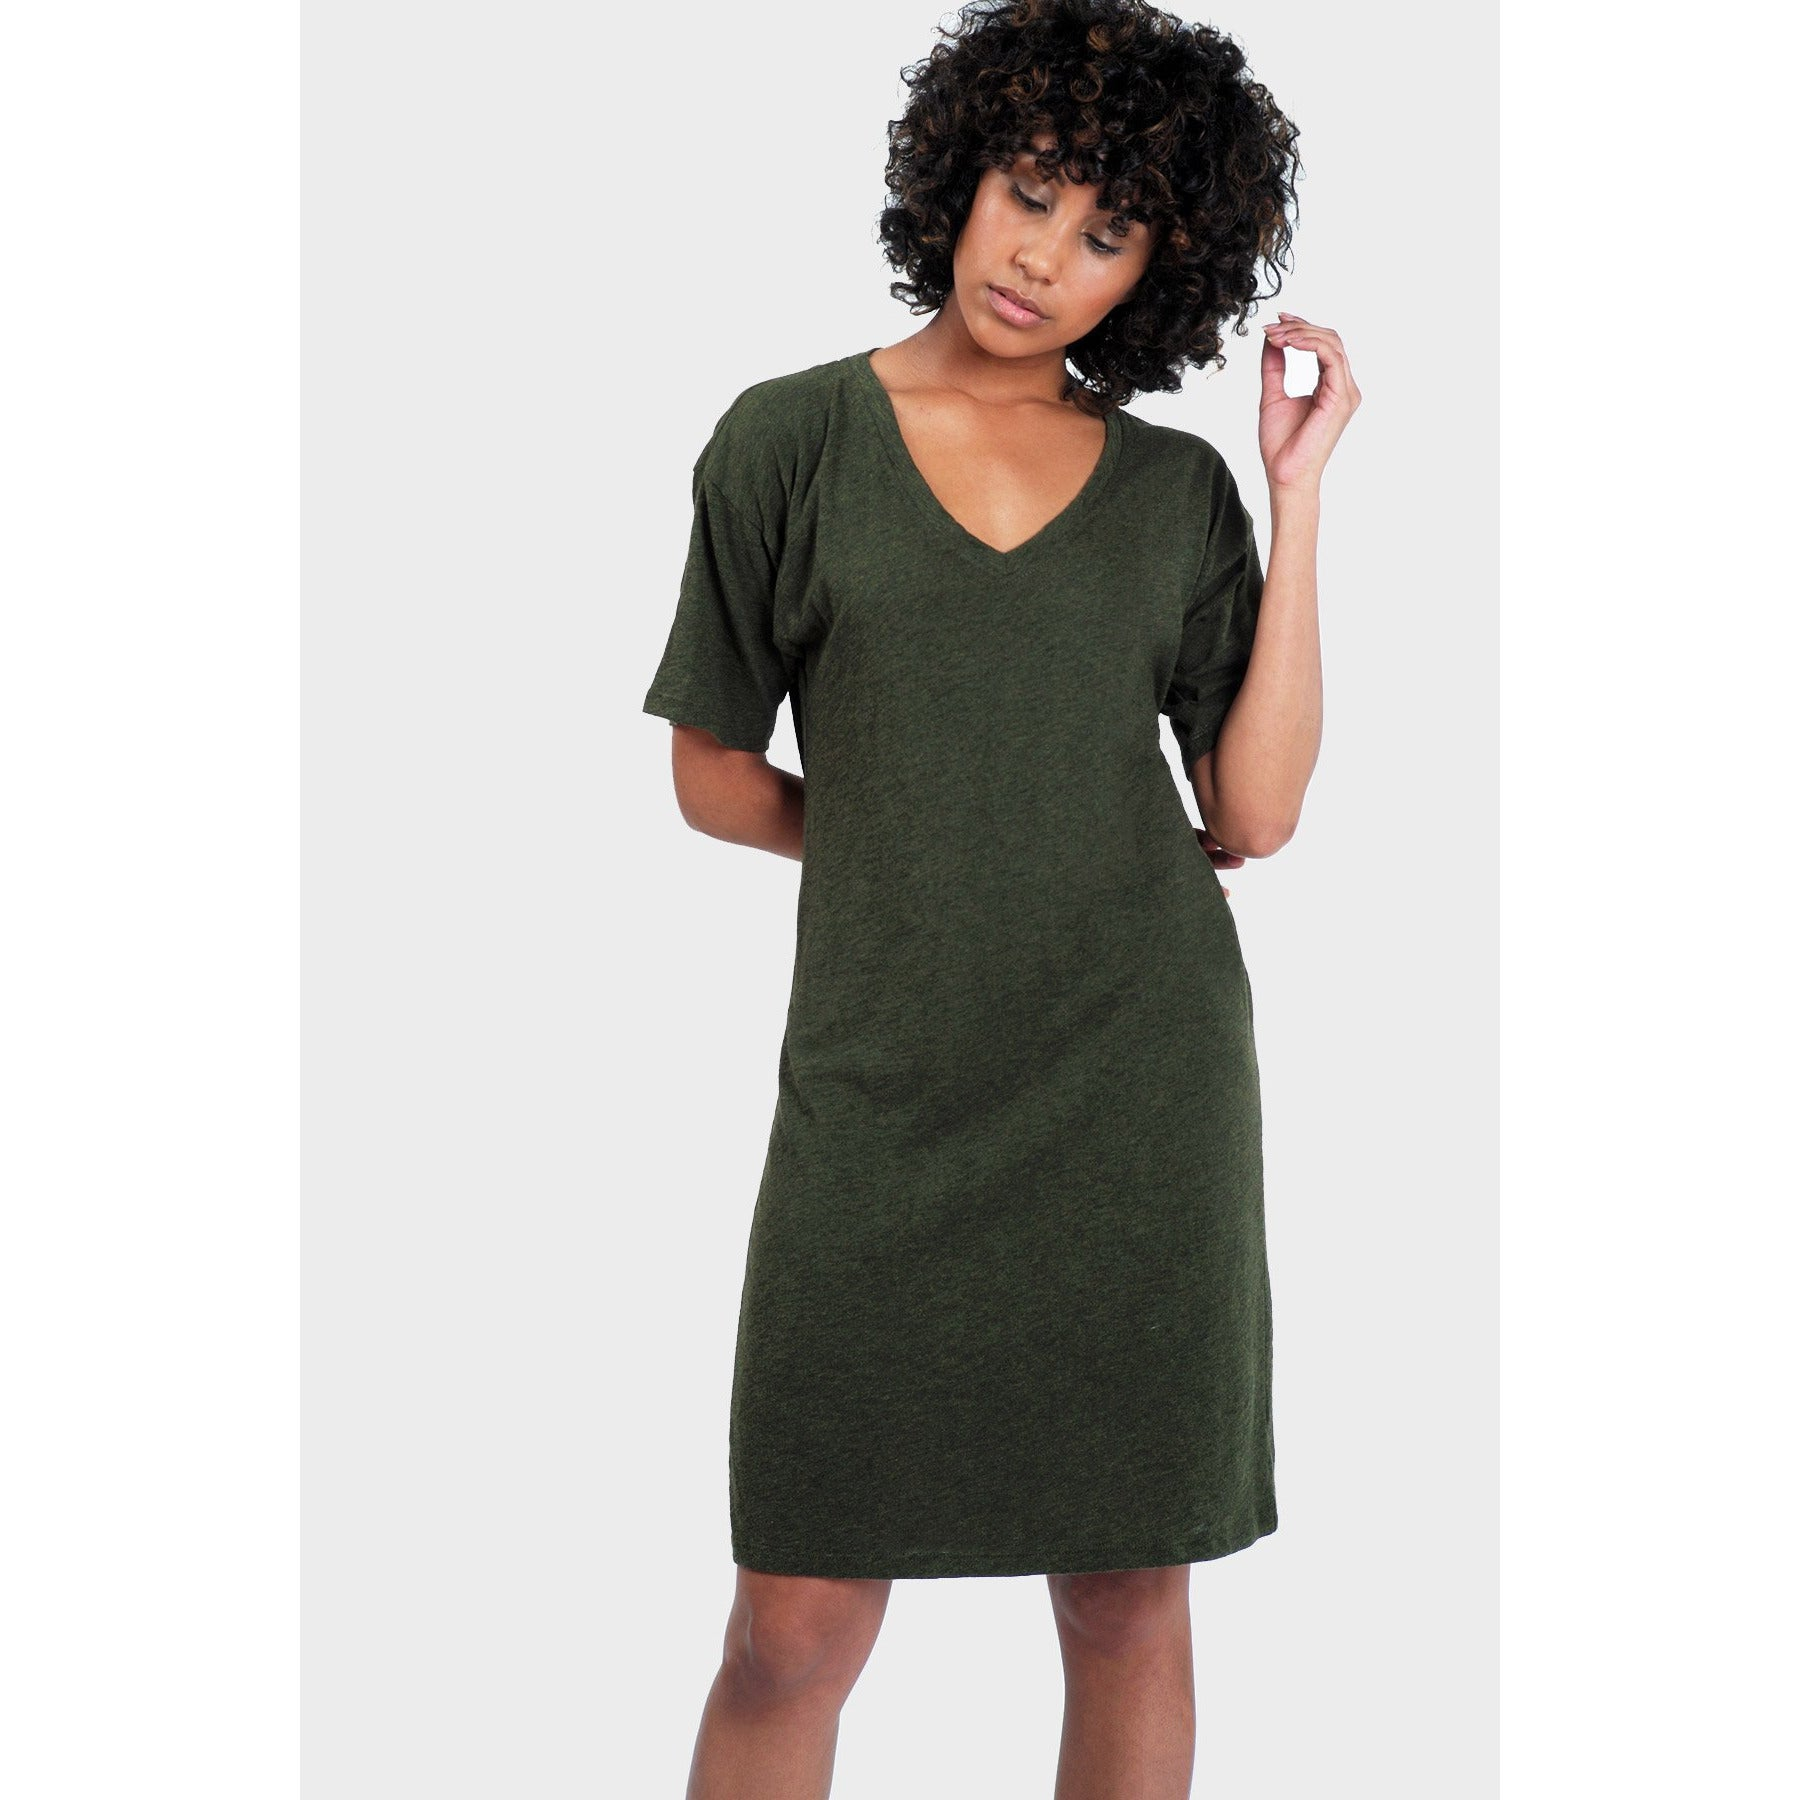 Mika T-Shirt Dress - Organic Cotton, Bamboo